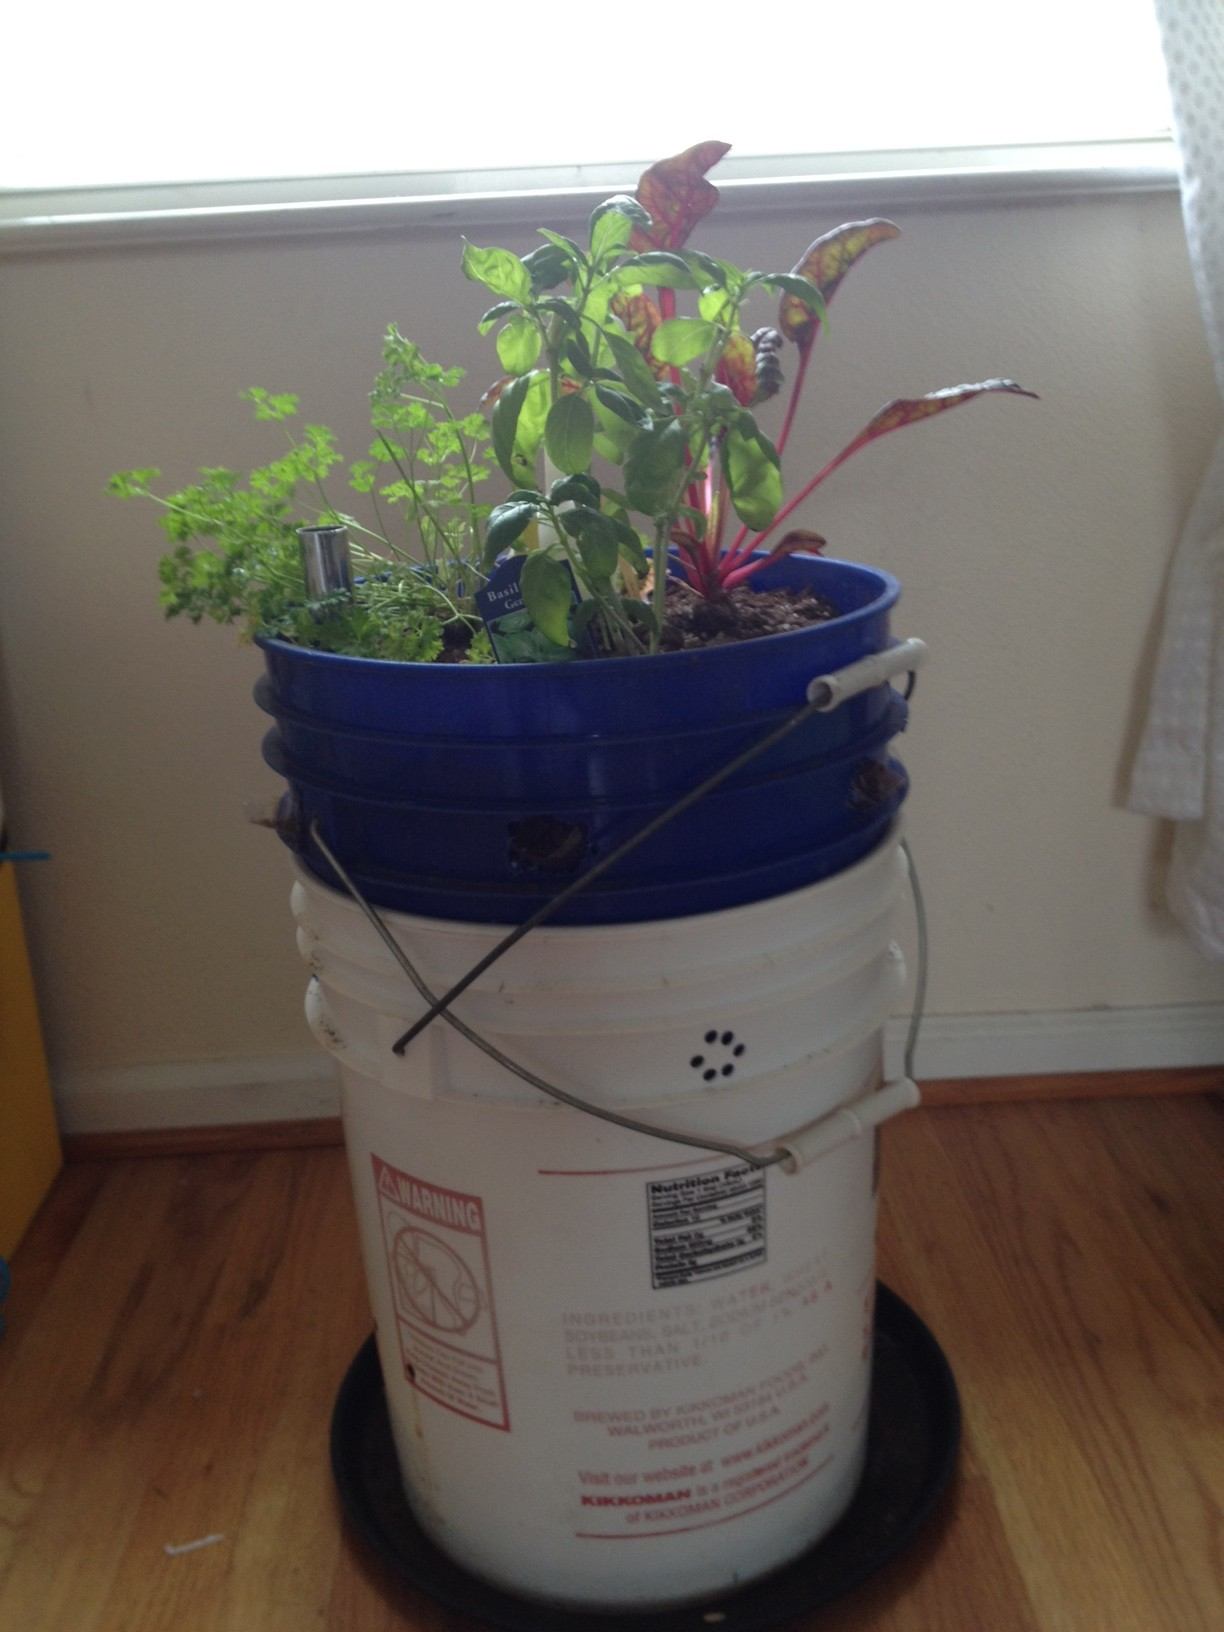 5 Gallon Bucket Planter Food Is Free Project